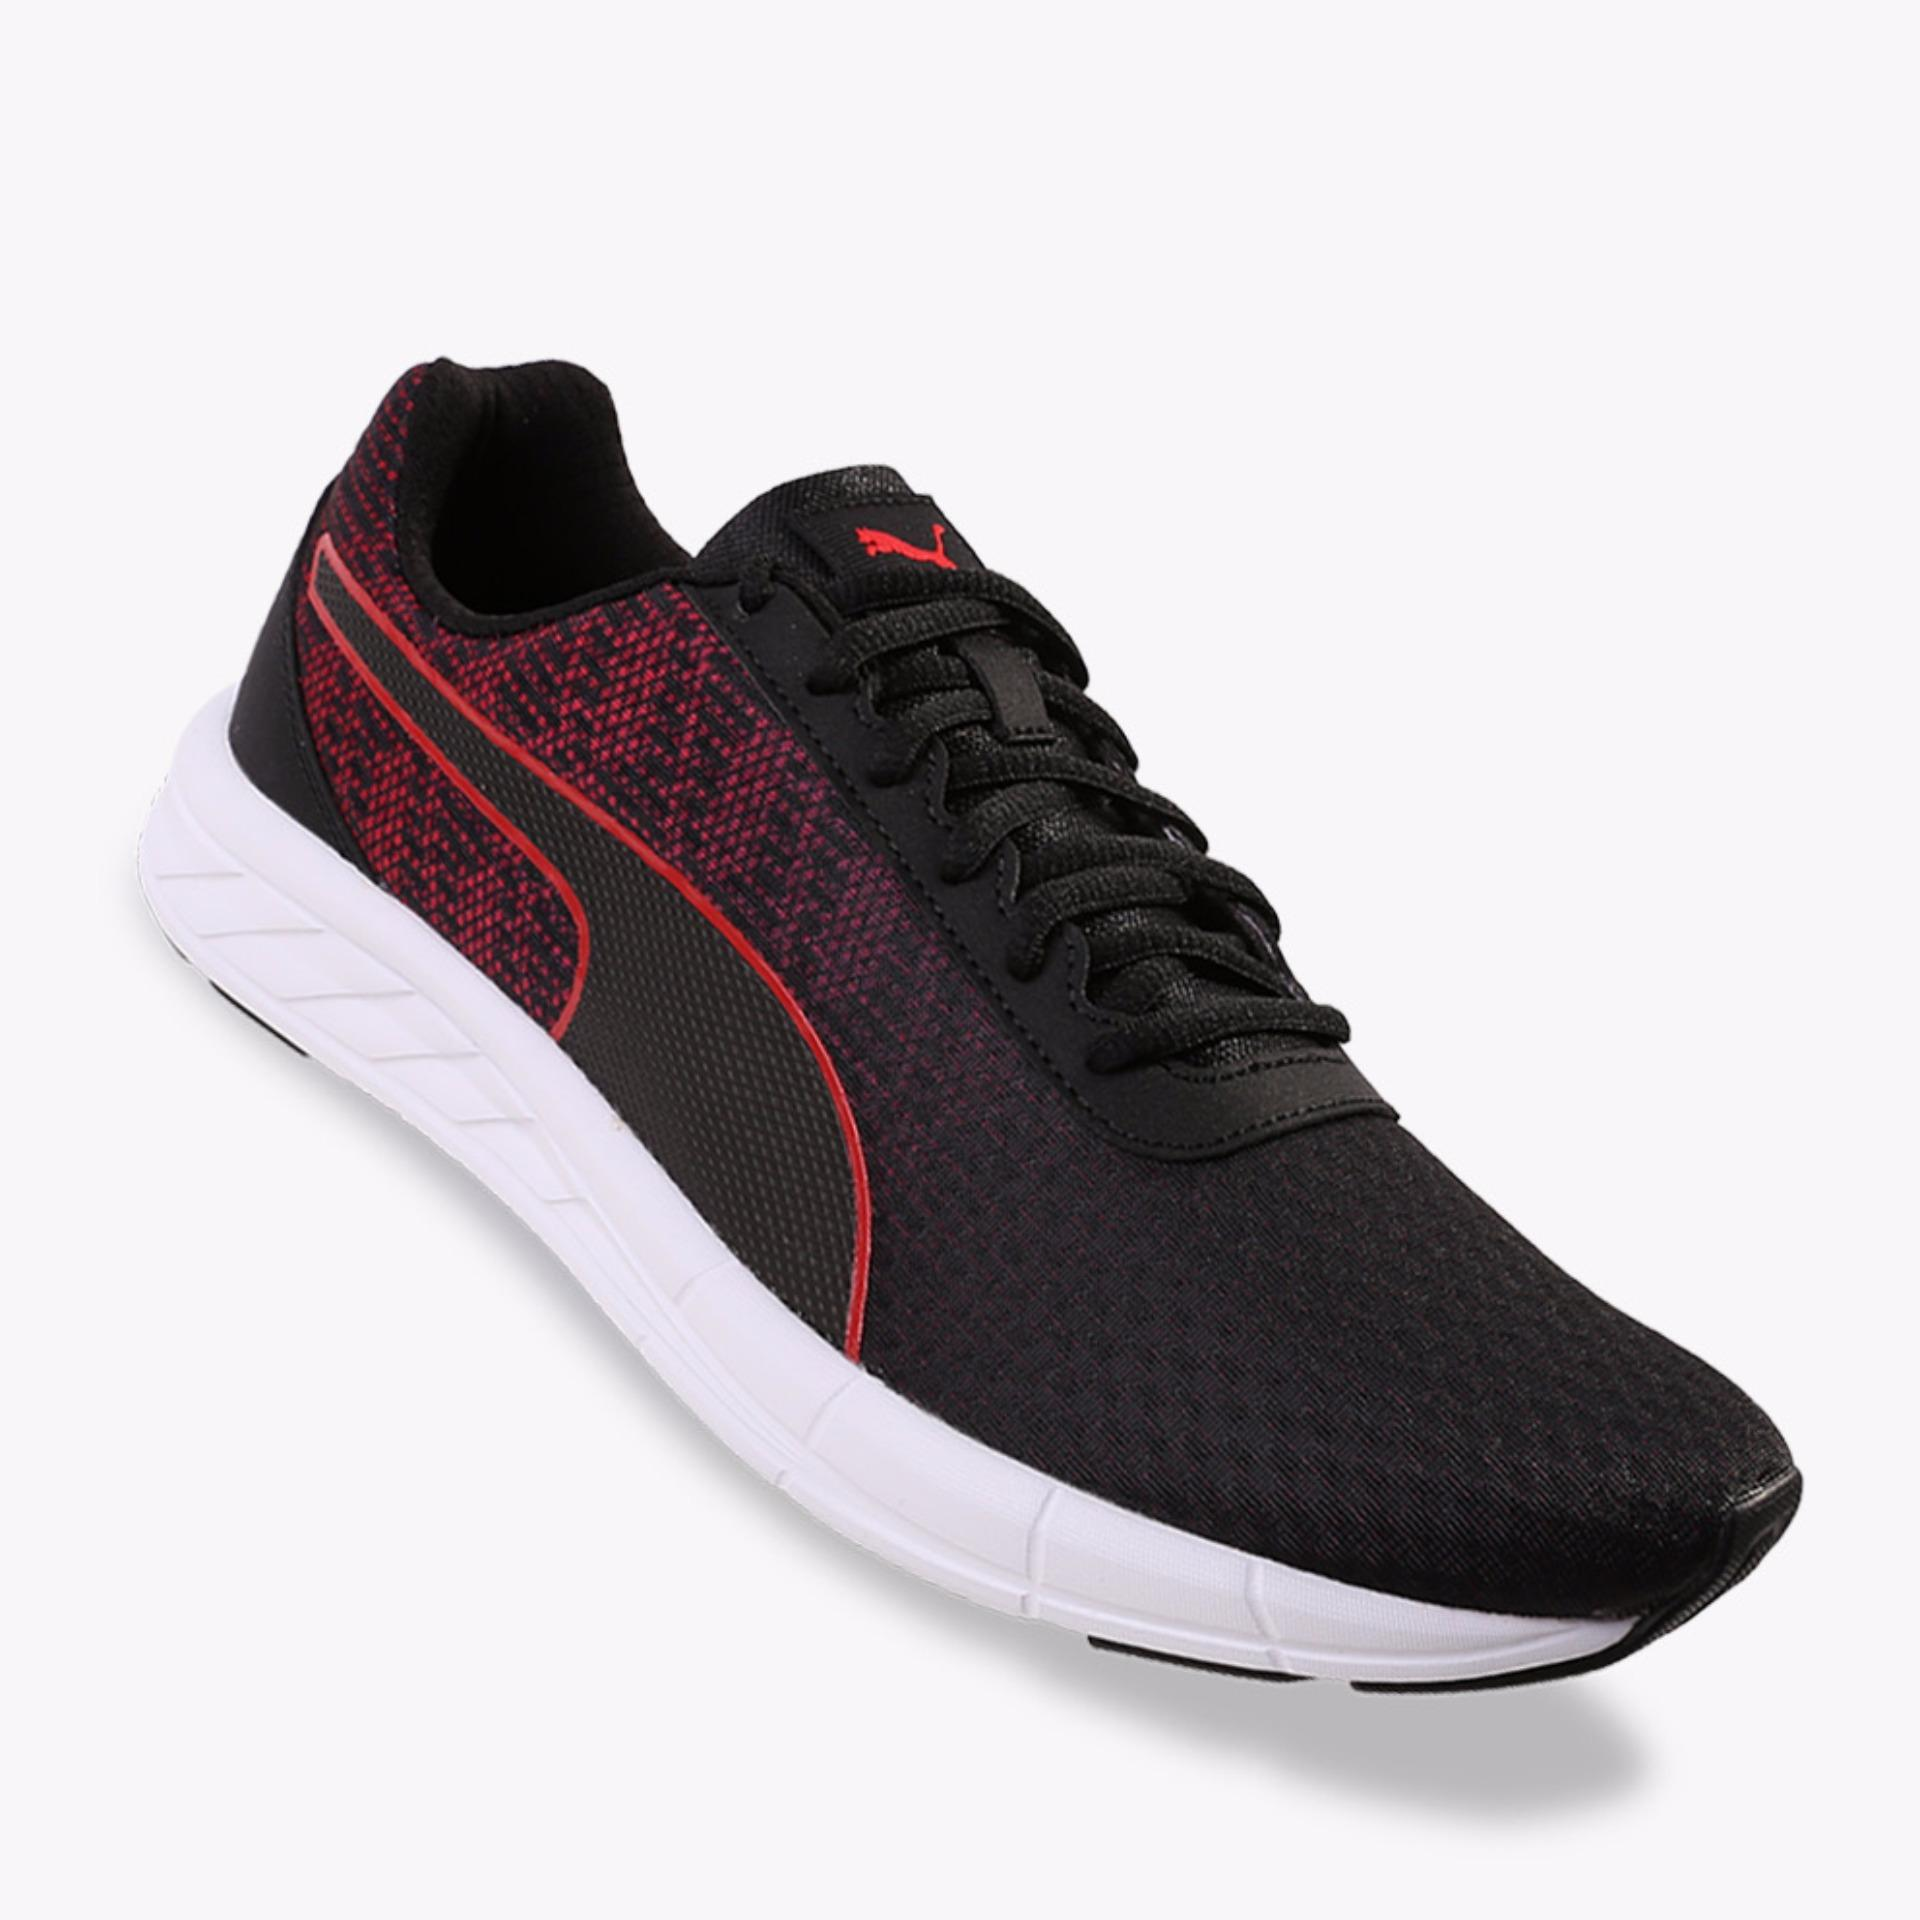 Jual Puma Comet Men S Running Shoes Hitam Merah Termurah